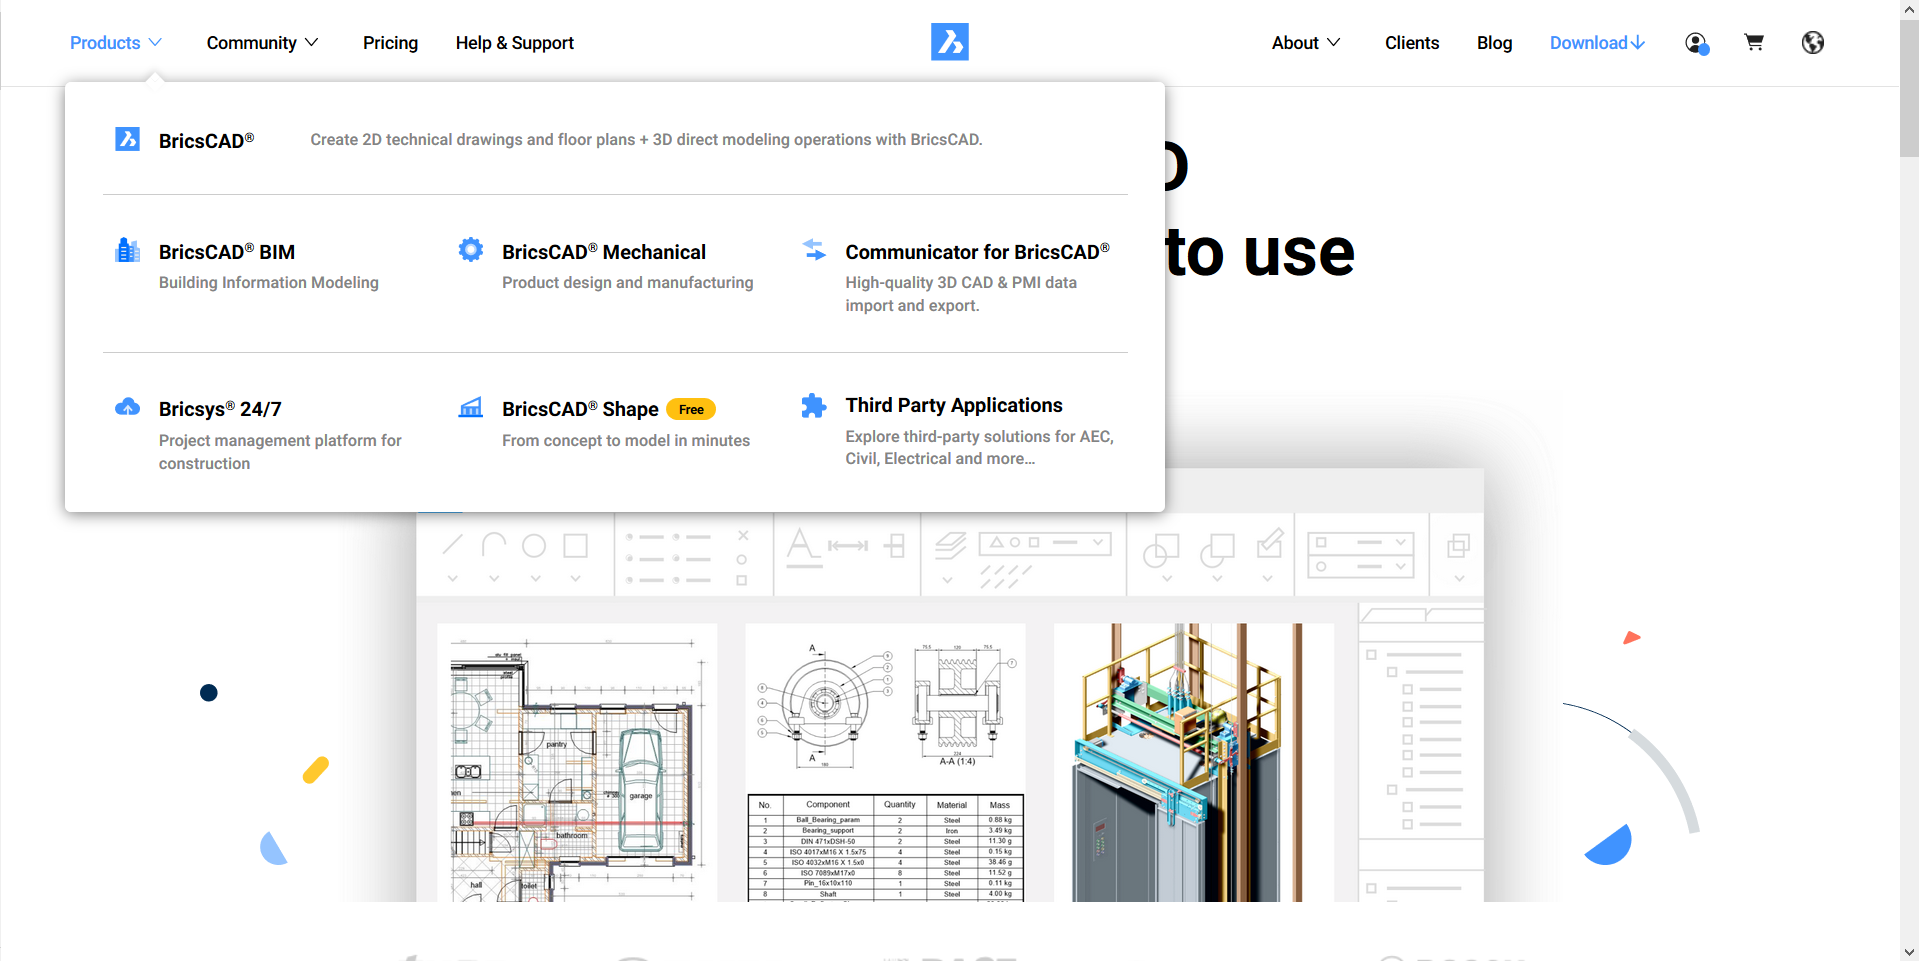 BricsCAD homepage with product options displayed